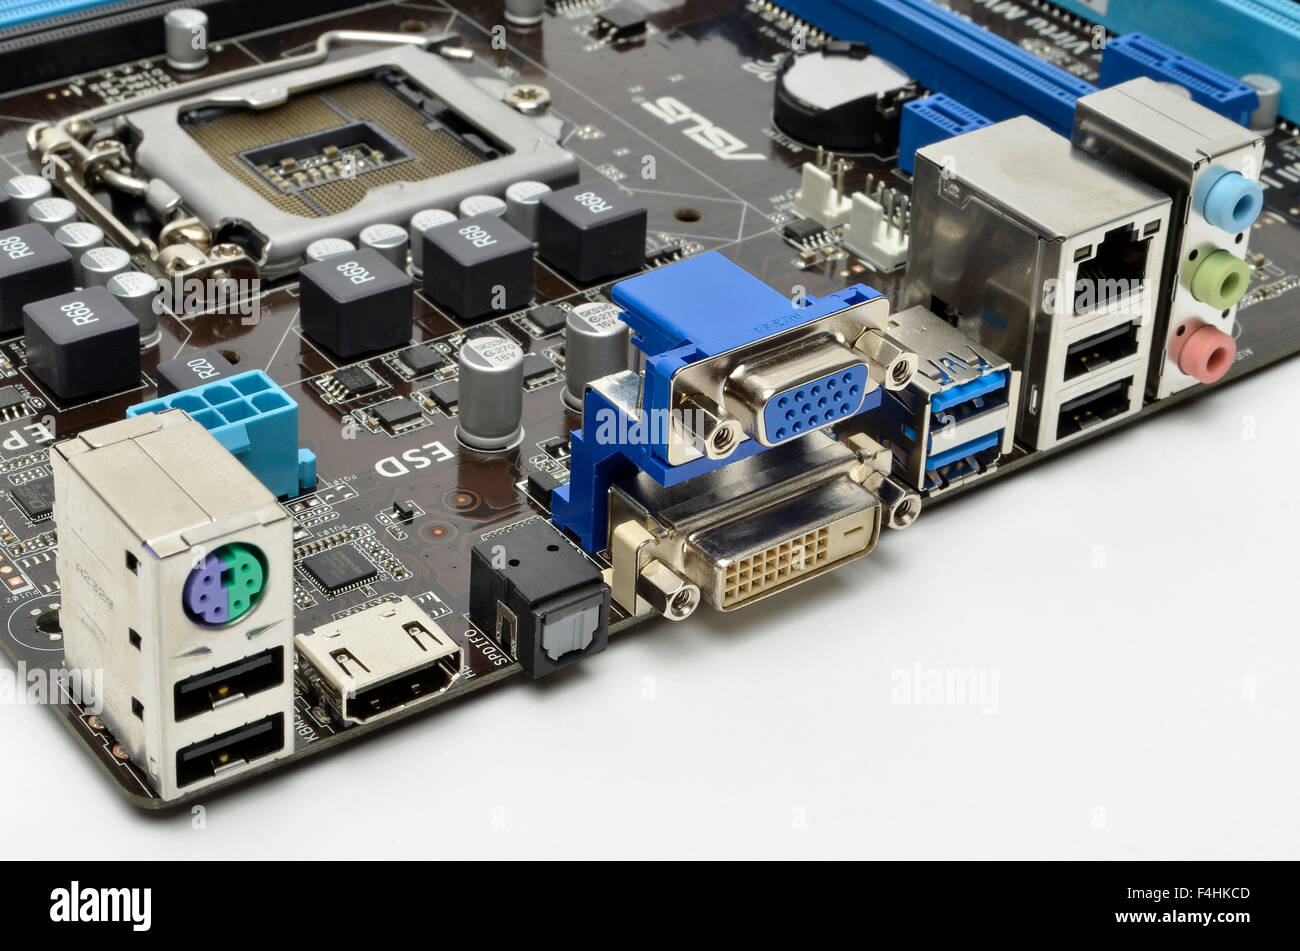 I/O ports on the rear of an ASUS motherboard, including keyboard